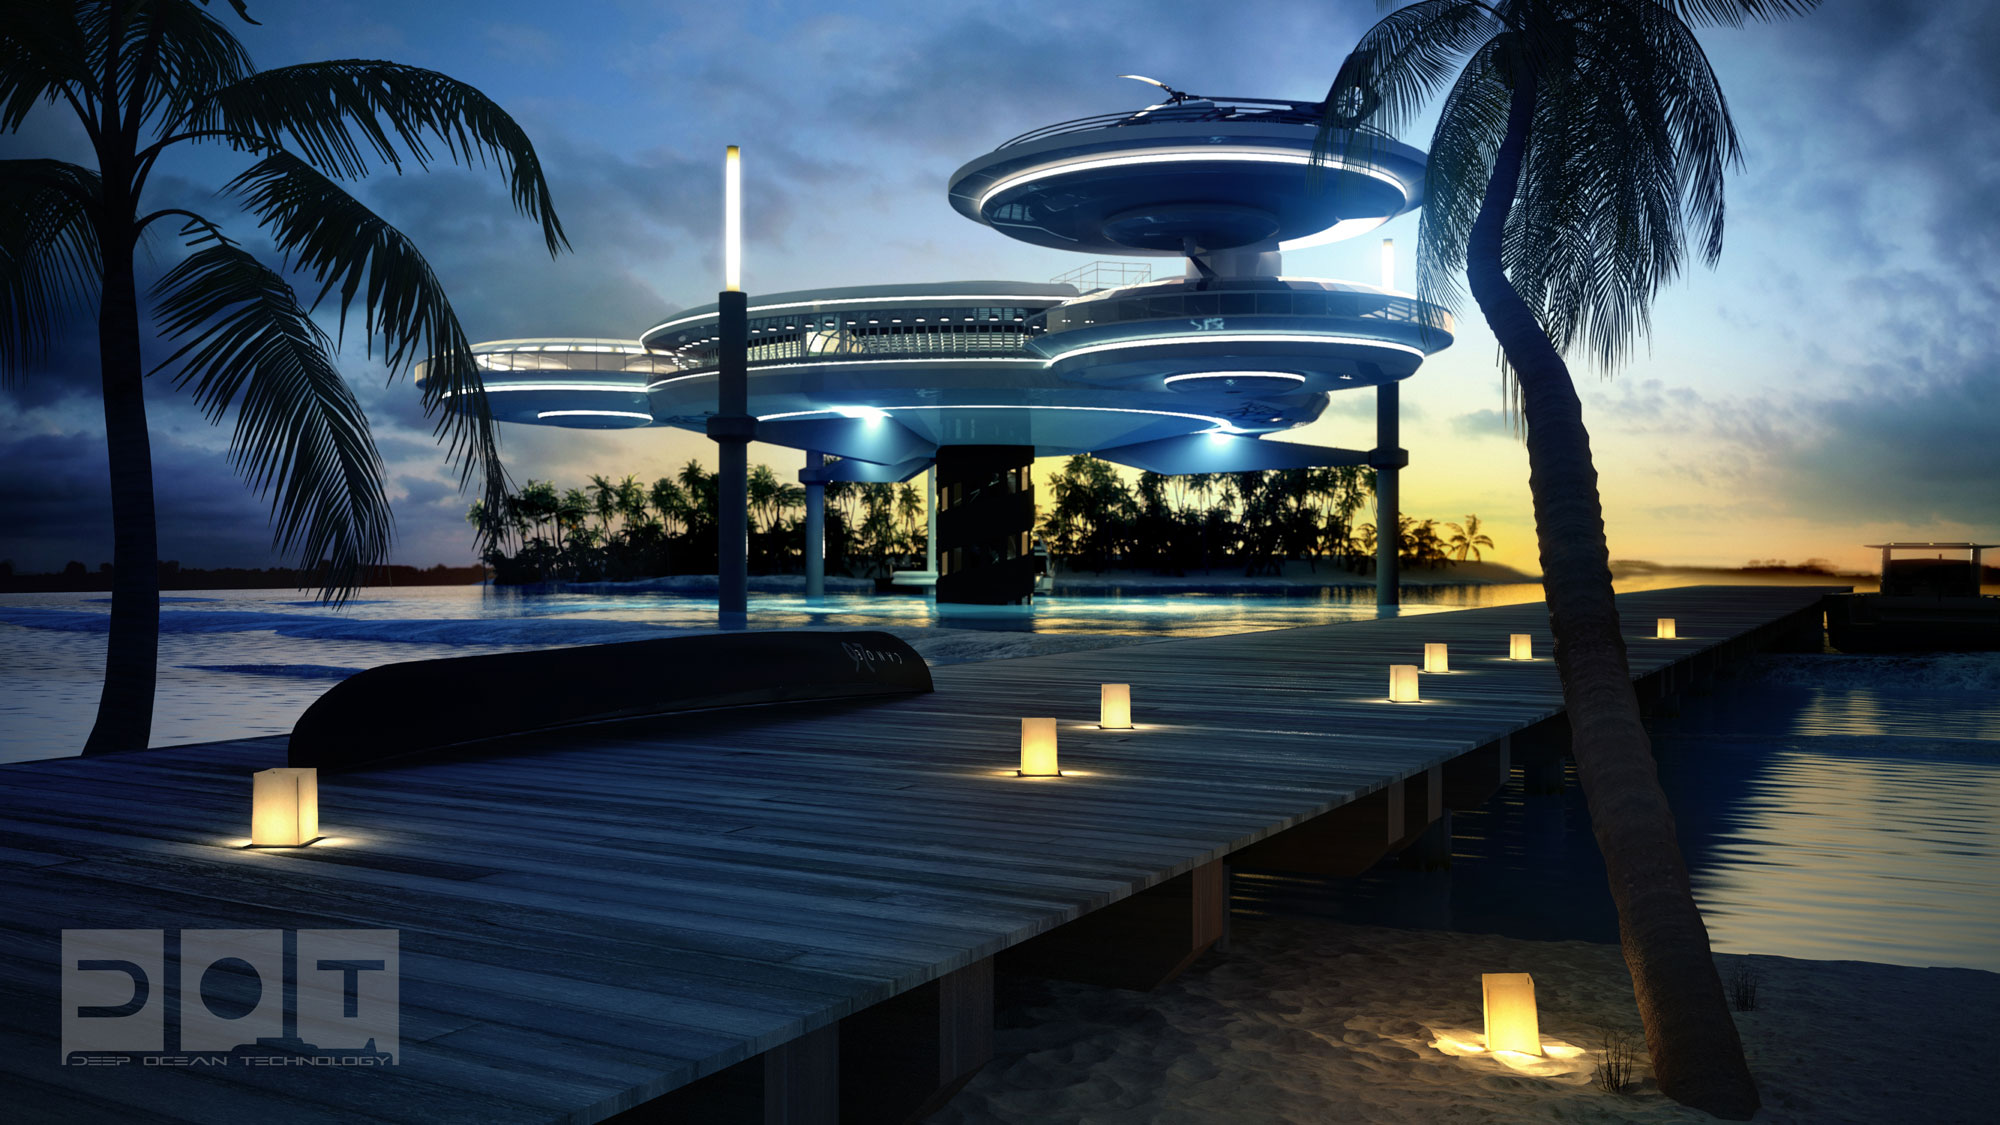 The Water Discus Underwater Hotel planned for Dubai (3)